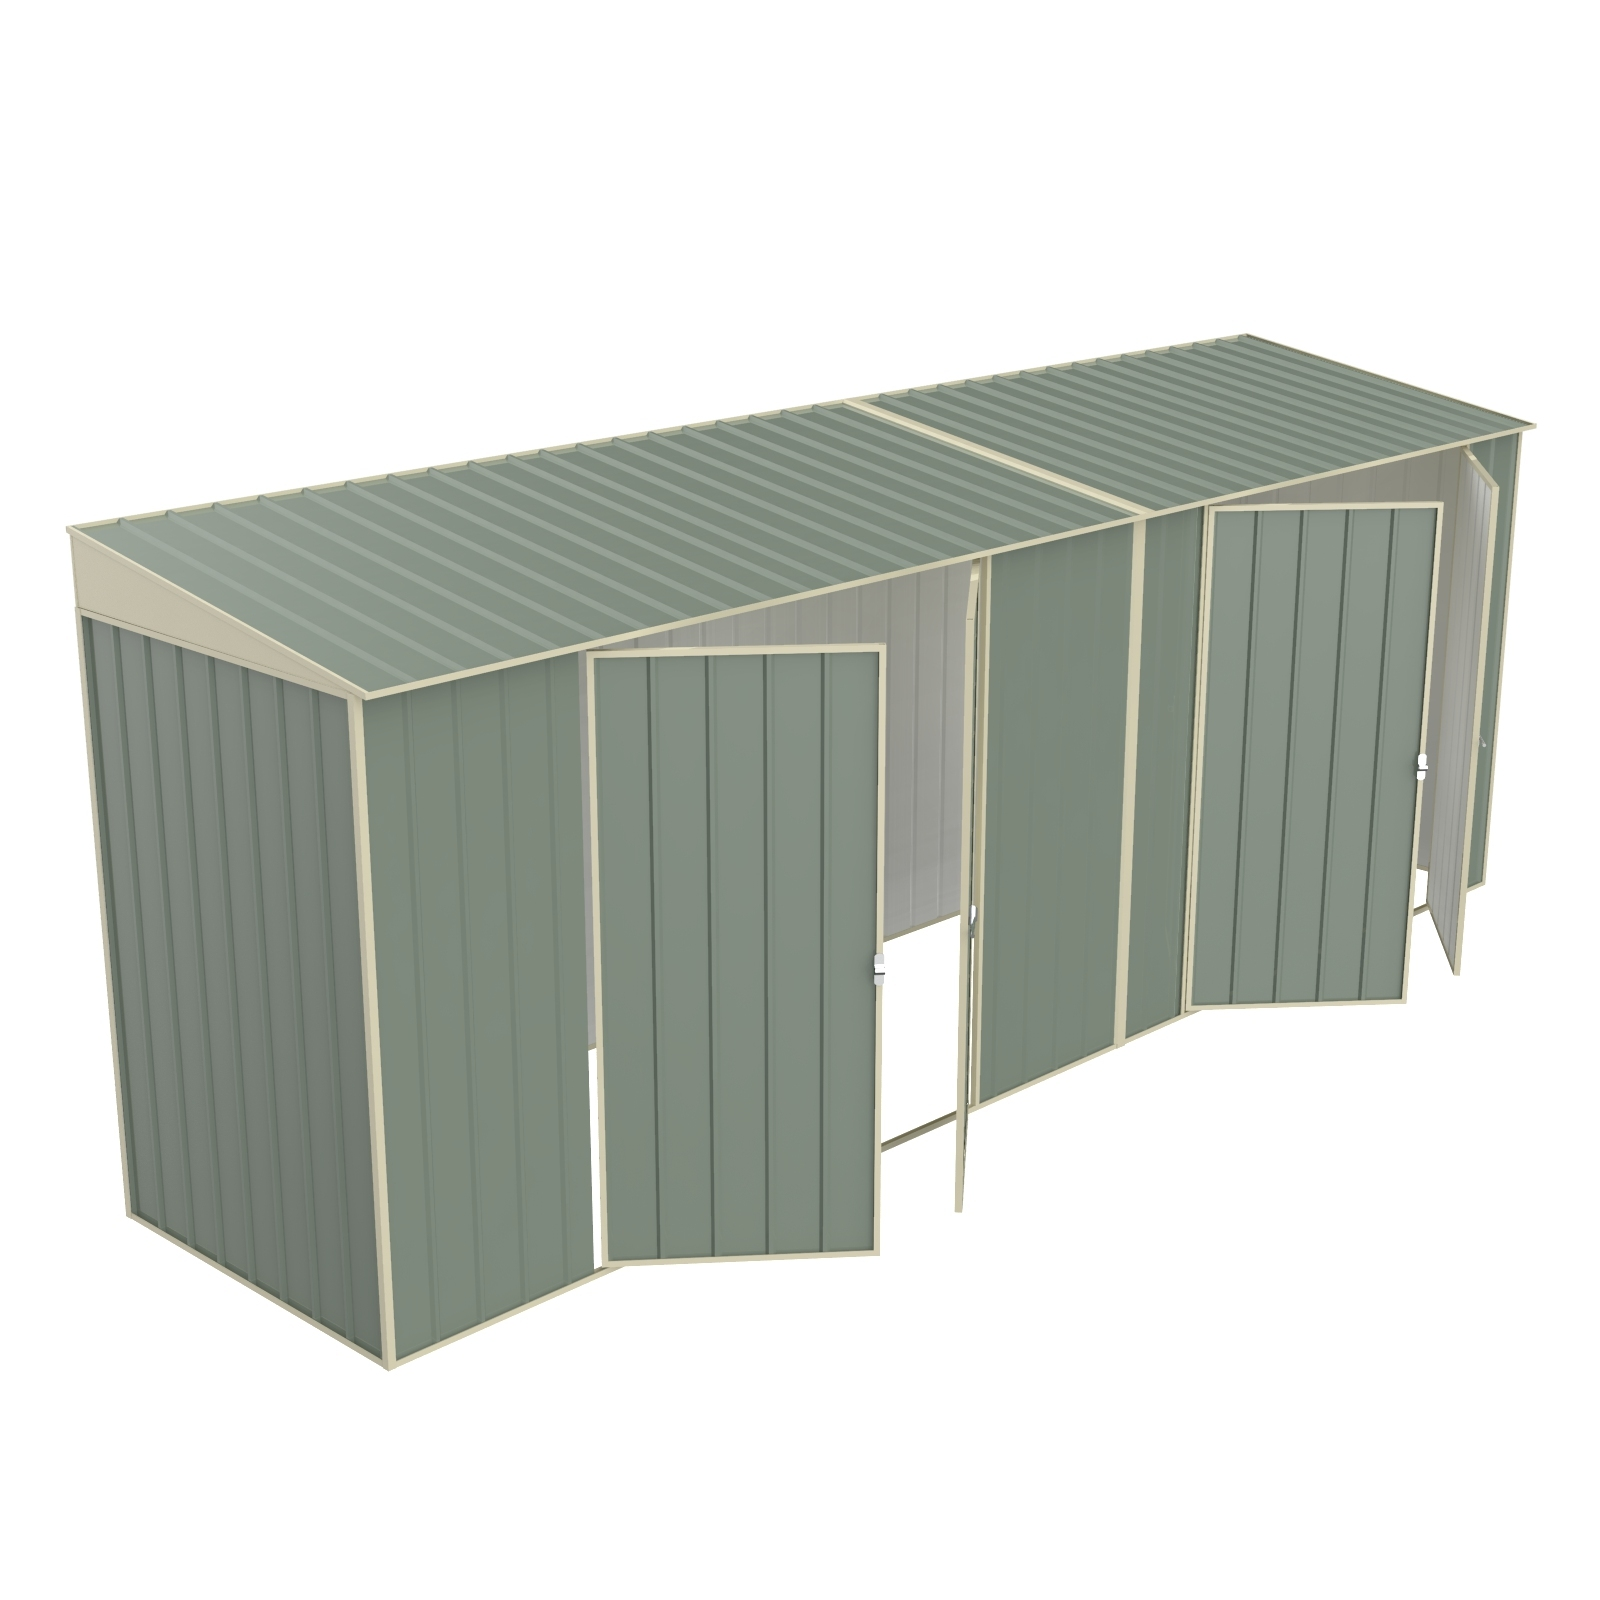 Build-a-Shed 1.2 x 5.2 x 2.0m Skillion Double Plus Dual Double Hinged Side Doors Shed - Green